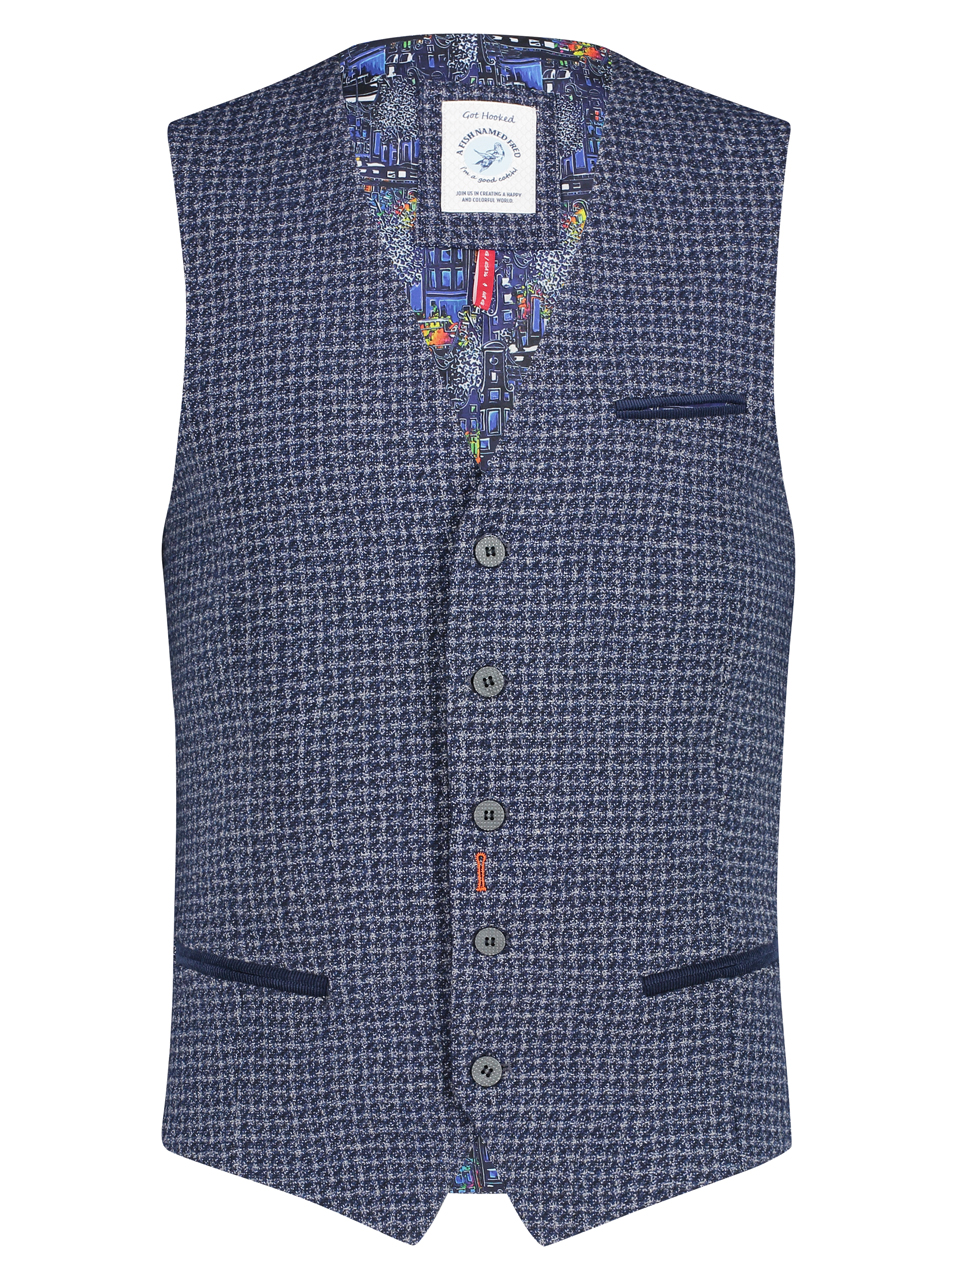 Product image Waistcoat Recycled Blend